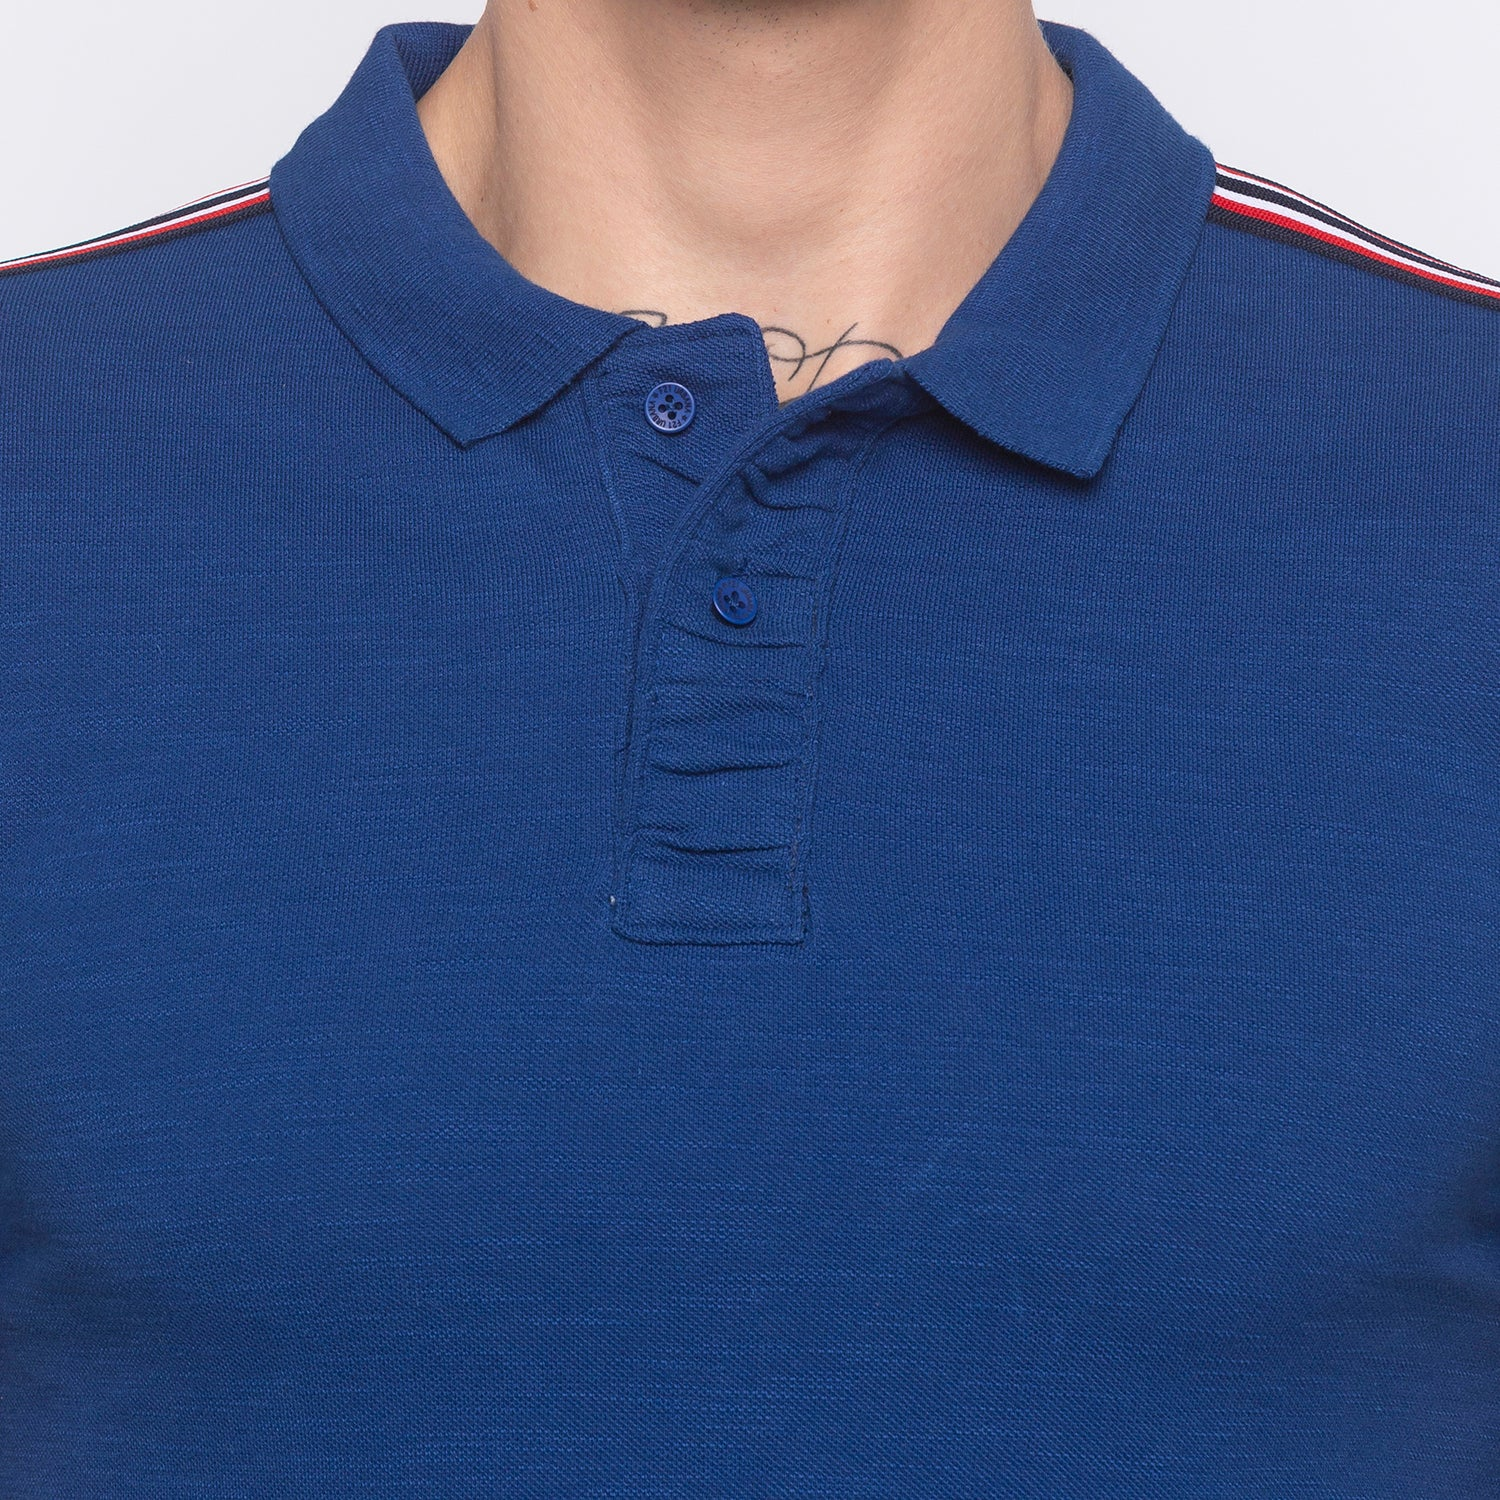 Electric Blue Polo T-shirt-5